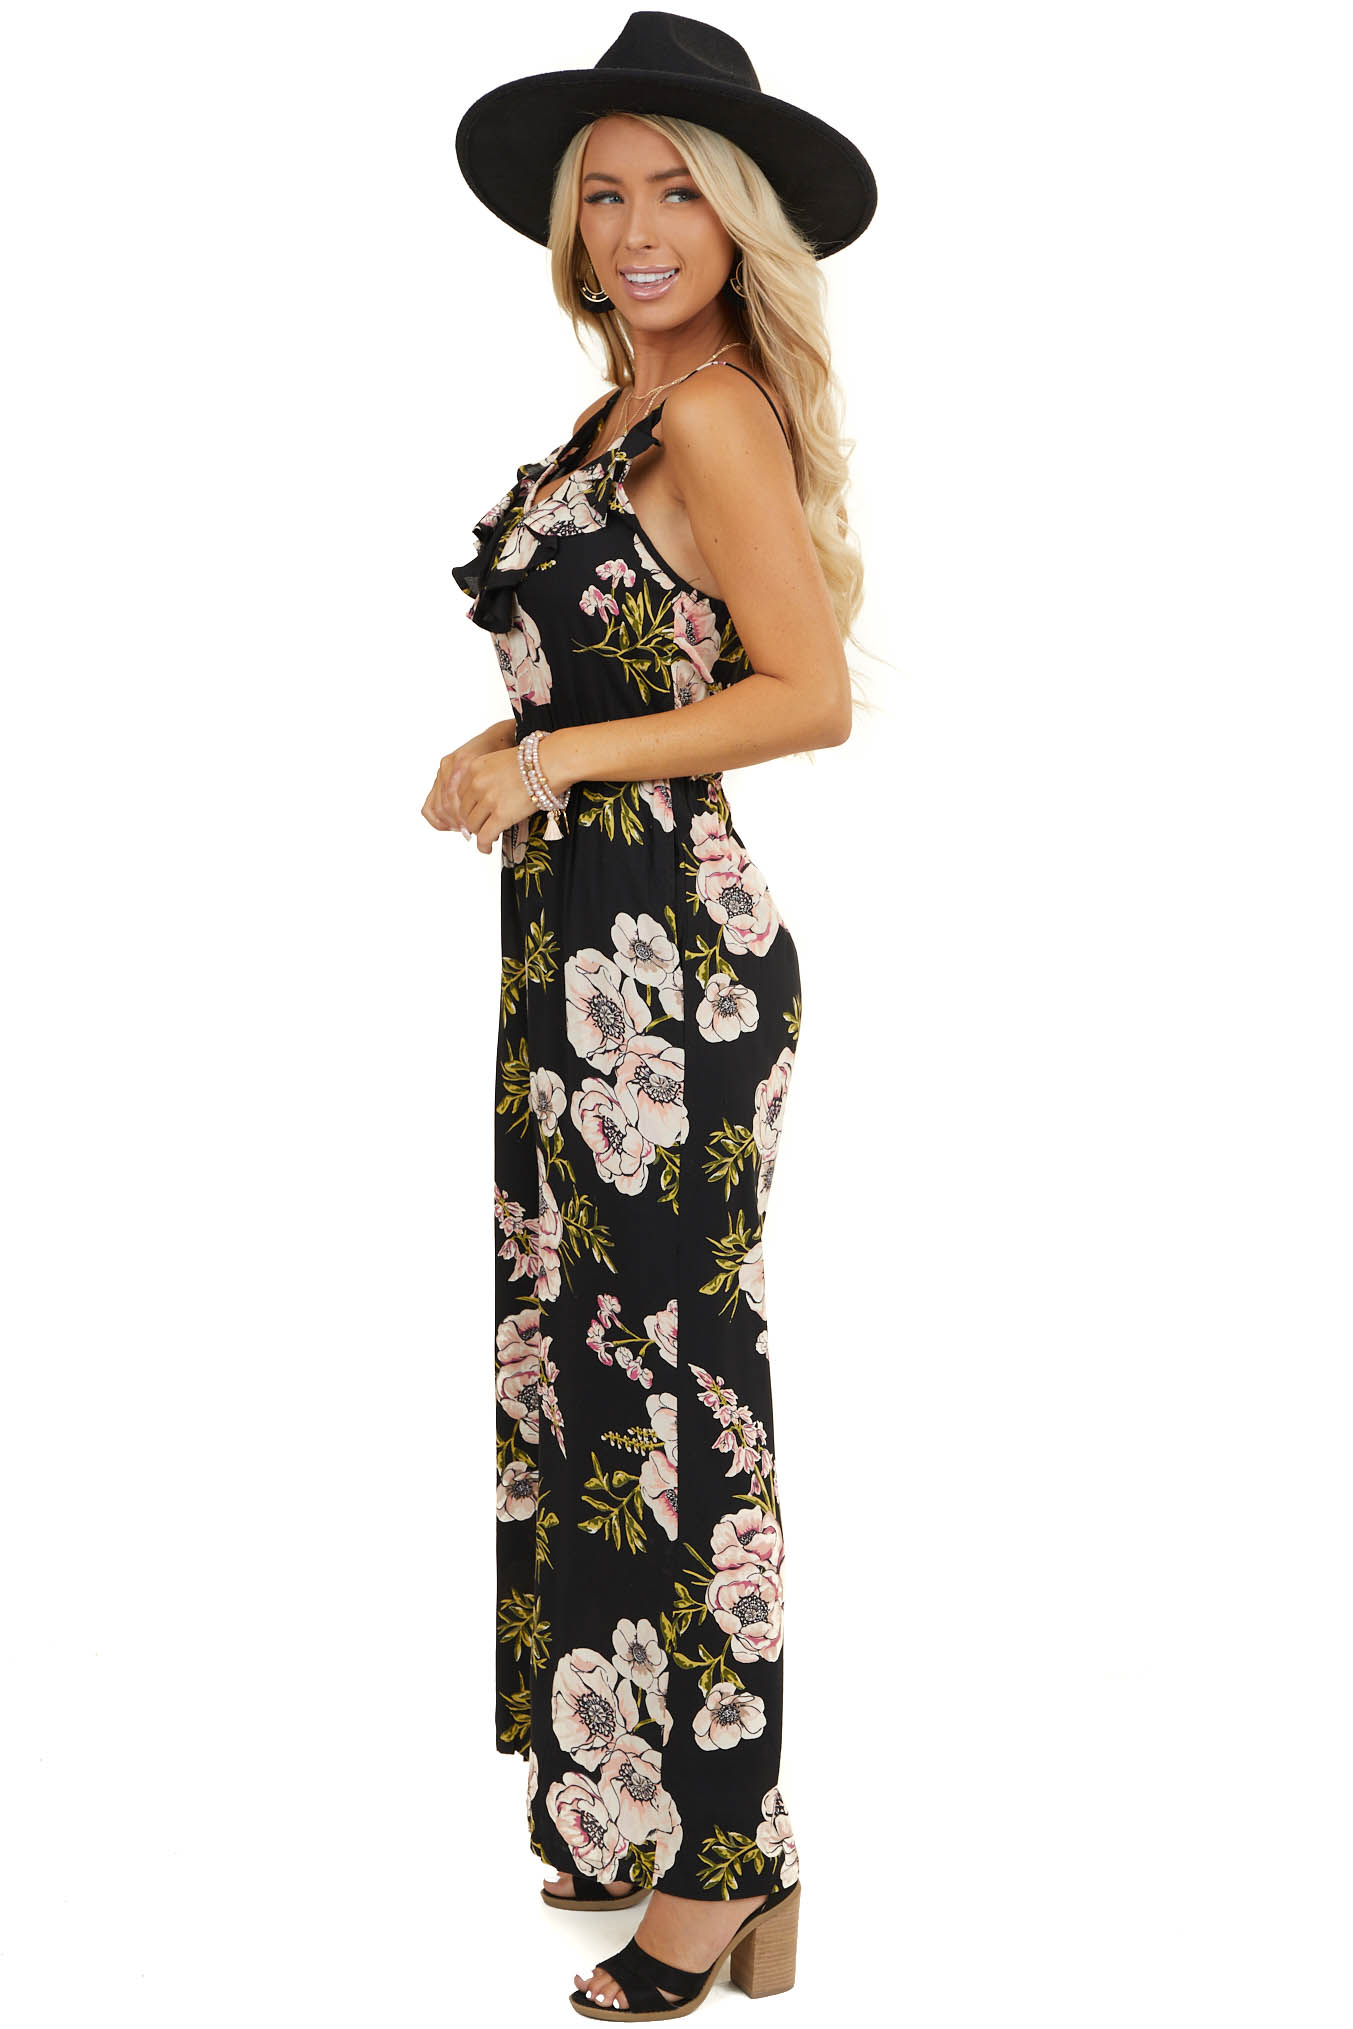 Black Floral Sleeveless Jumpsuit with Pockets and Ruffles